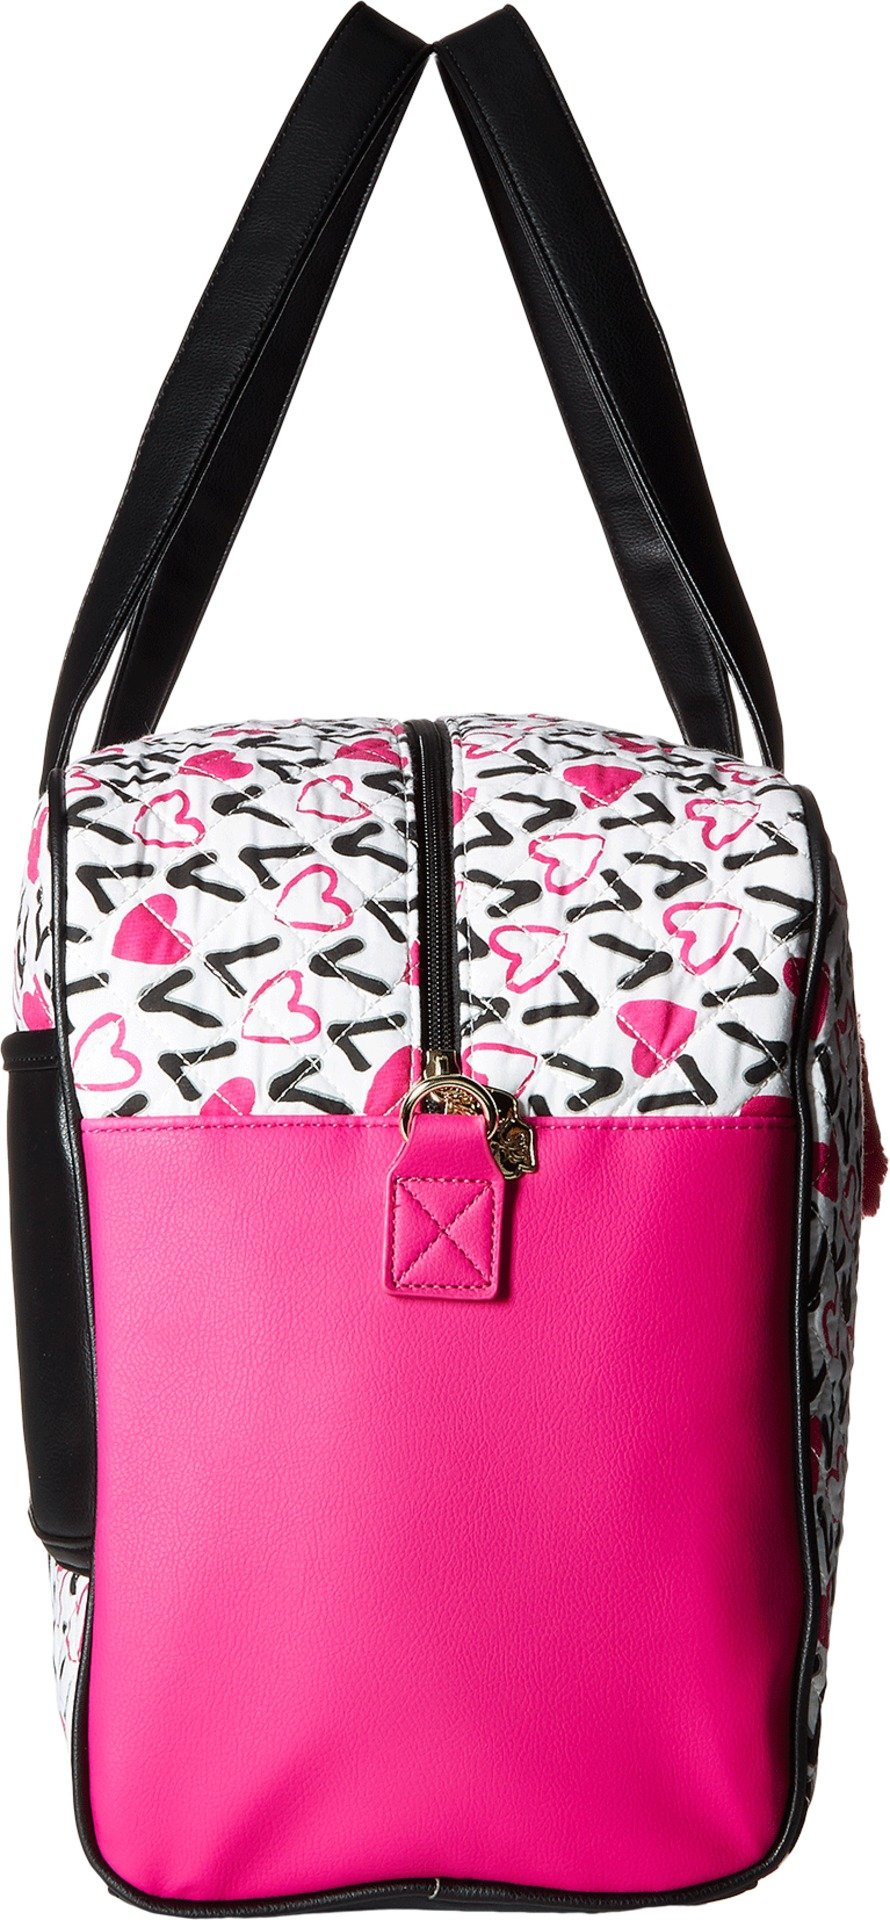 Luv Betsey Women's Cruzin Cotton Weekender w/A Luggage Pass Through On The Back Love Pink-Az One Size by Luv Betsey (Image #3)